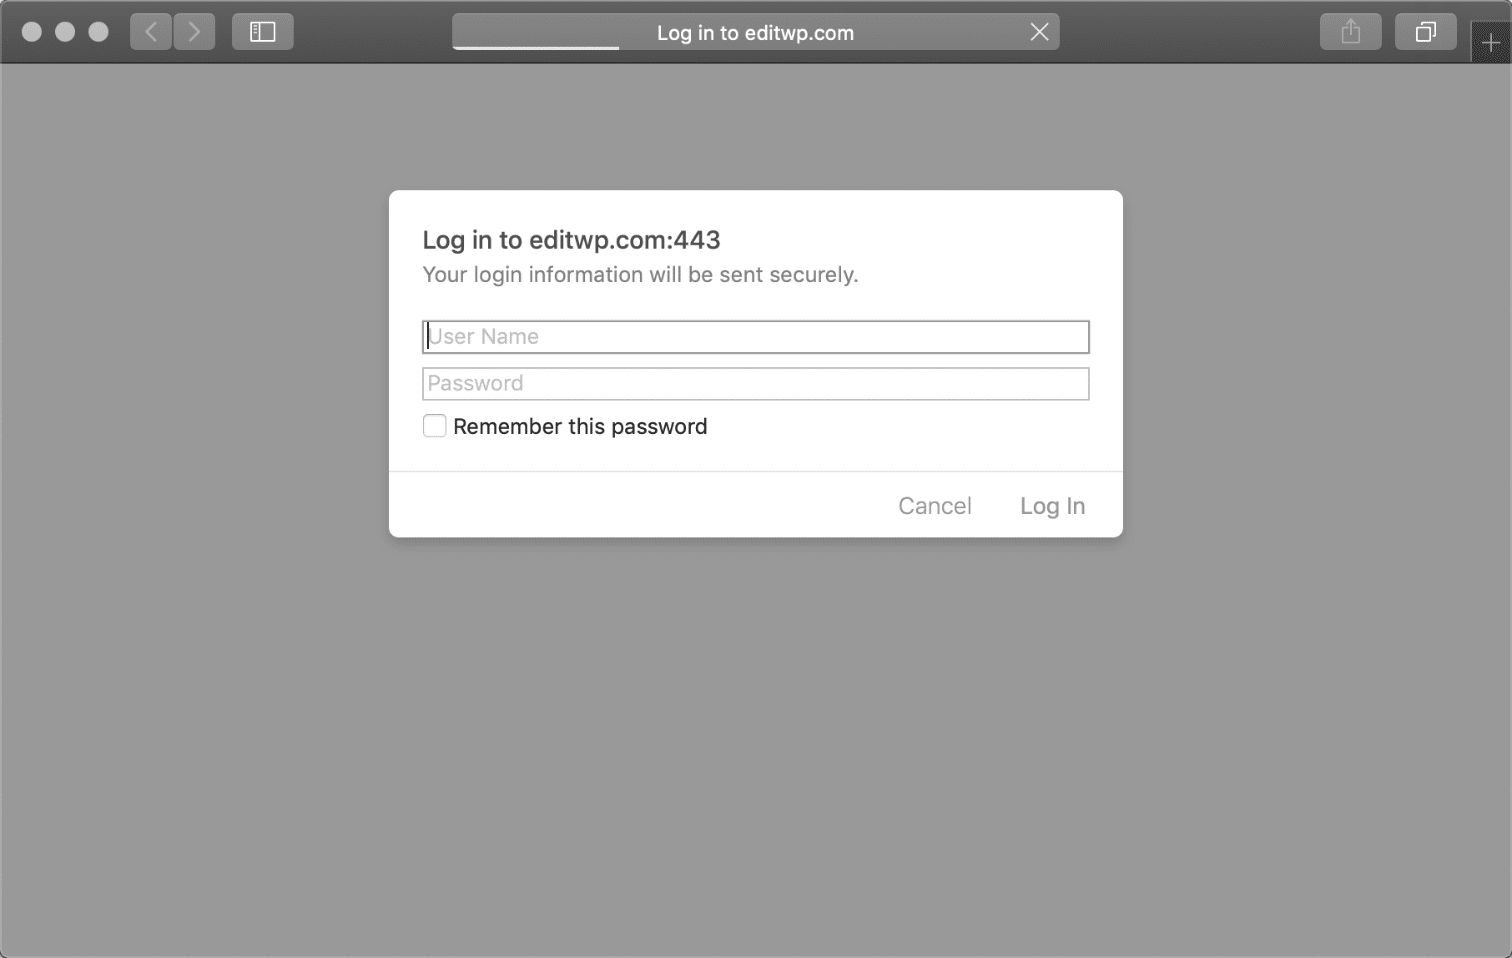 .htpasswd login prompt in Safari